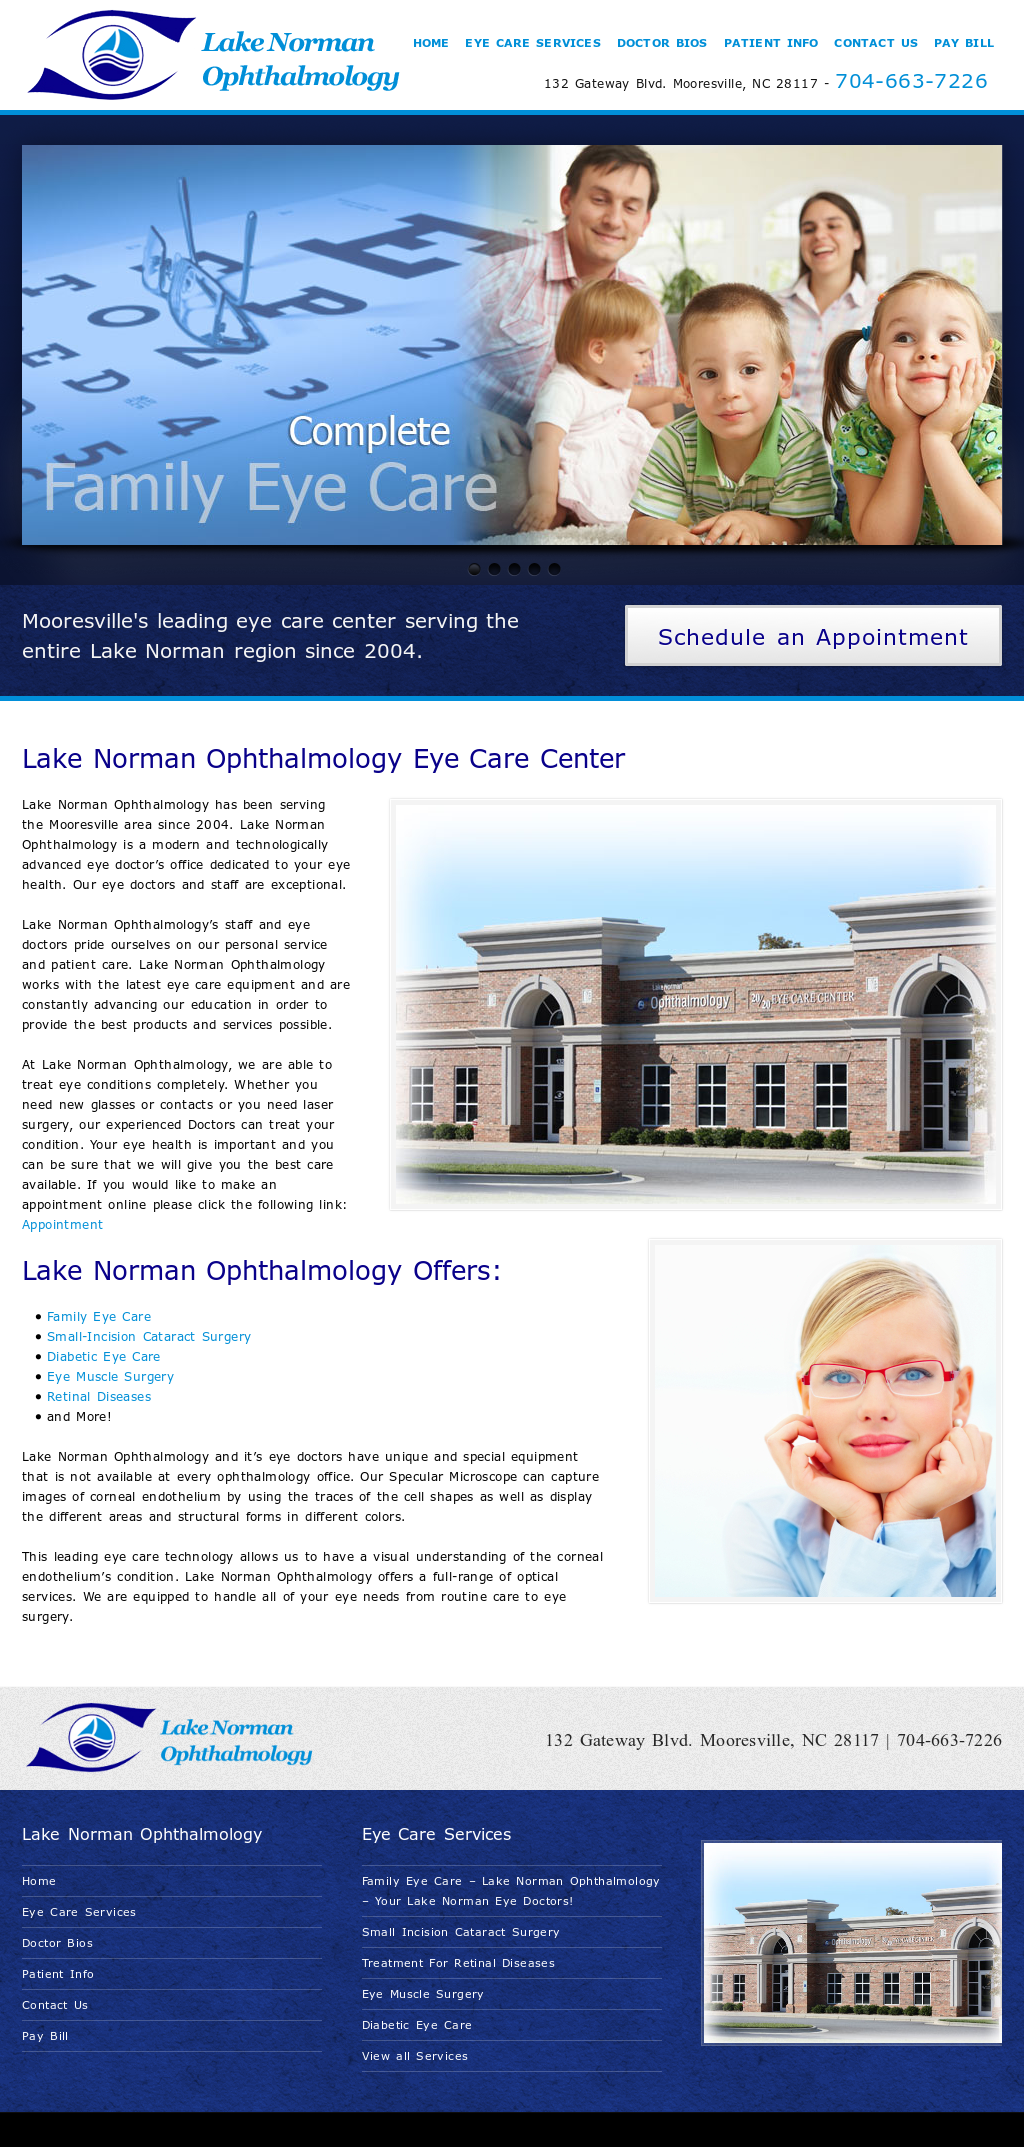 b00ad9aee1b Lake Norman Ophthalmology Competitors